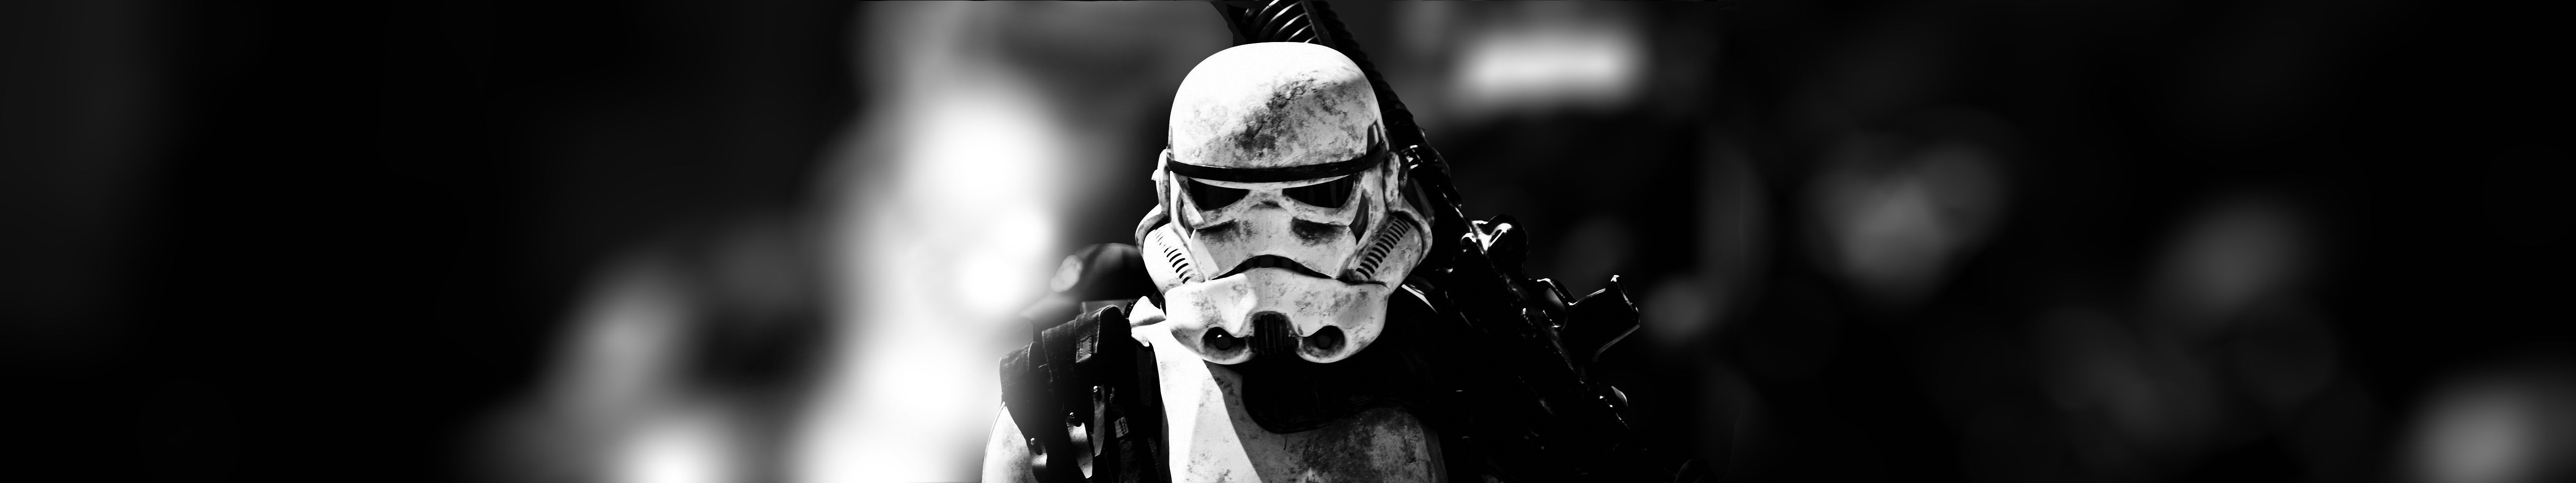 Created my own Triple Monitor Stormtrooper wallpaper to